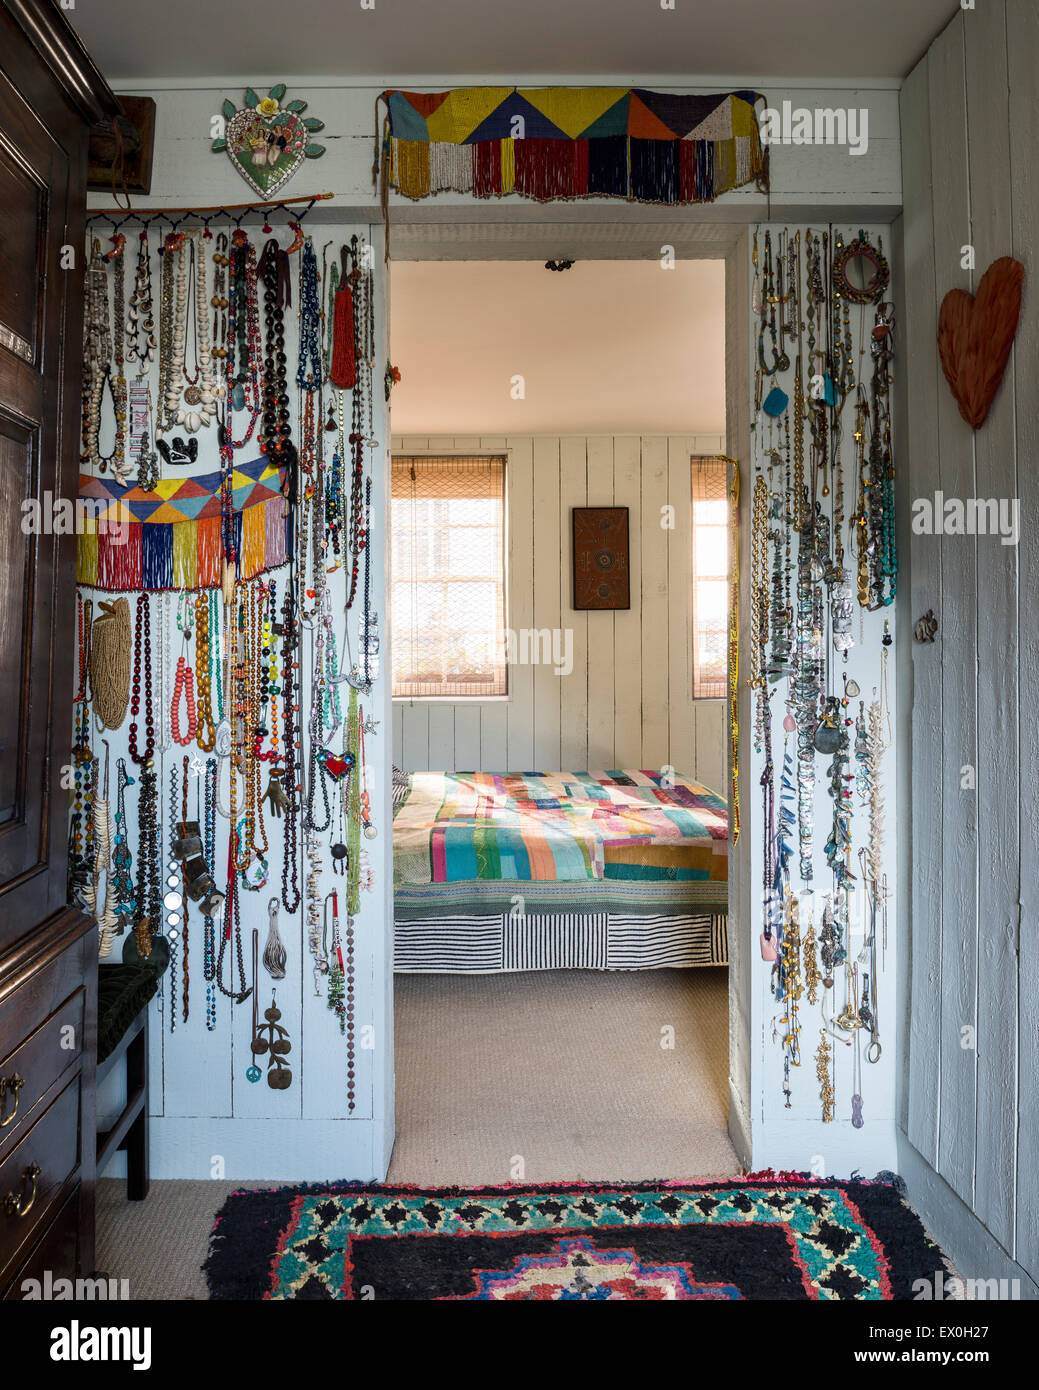 Necklaces hung from pins around doorway into bedroom - Stock Image